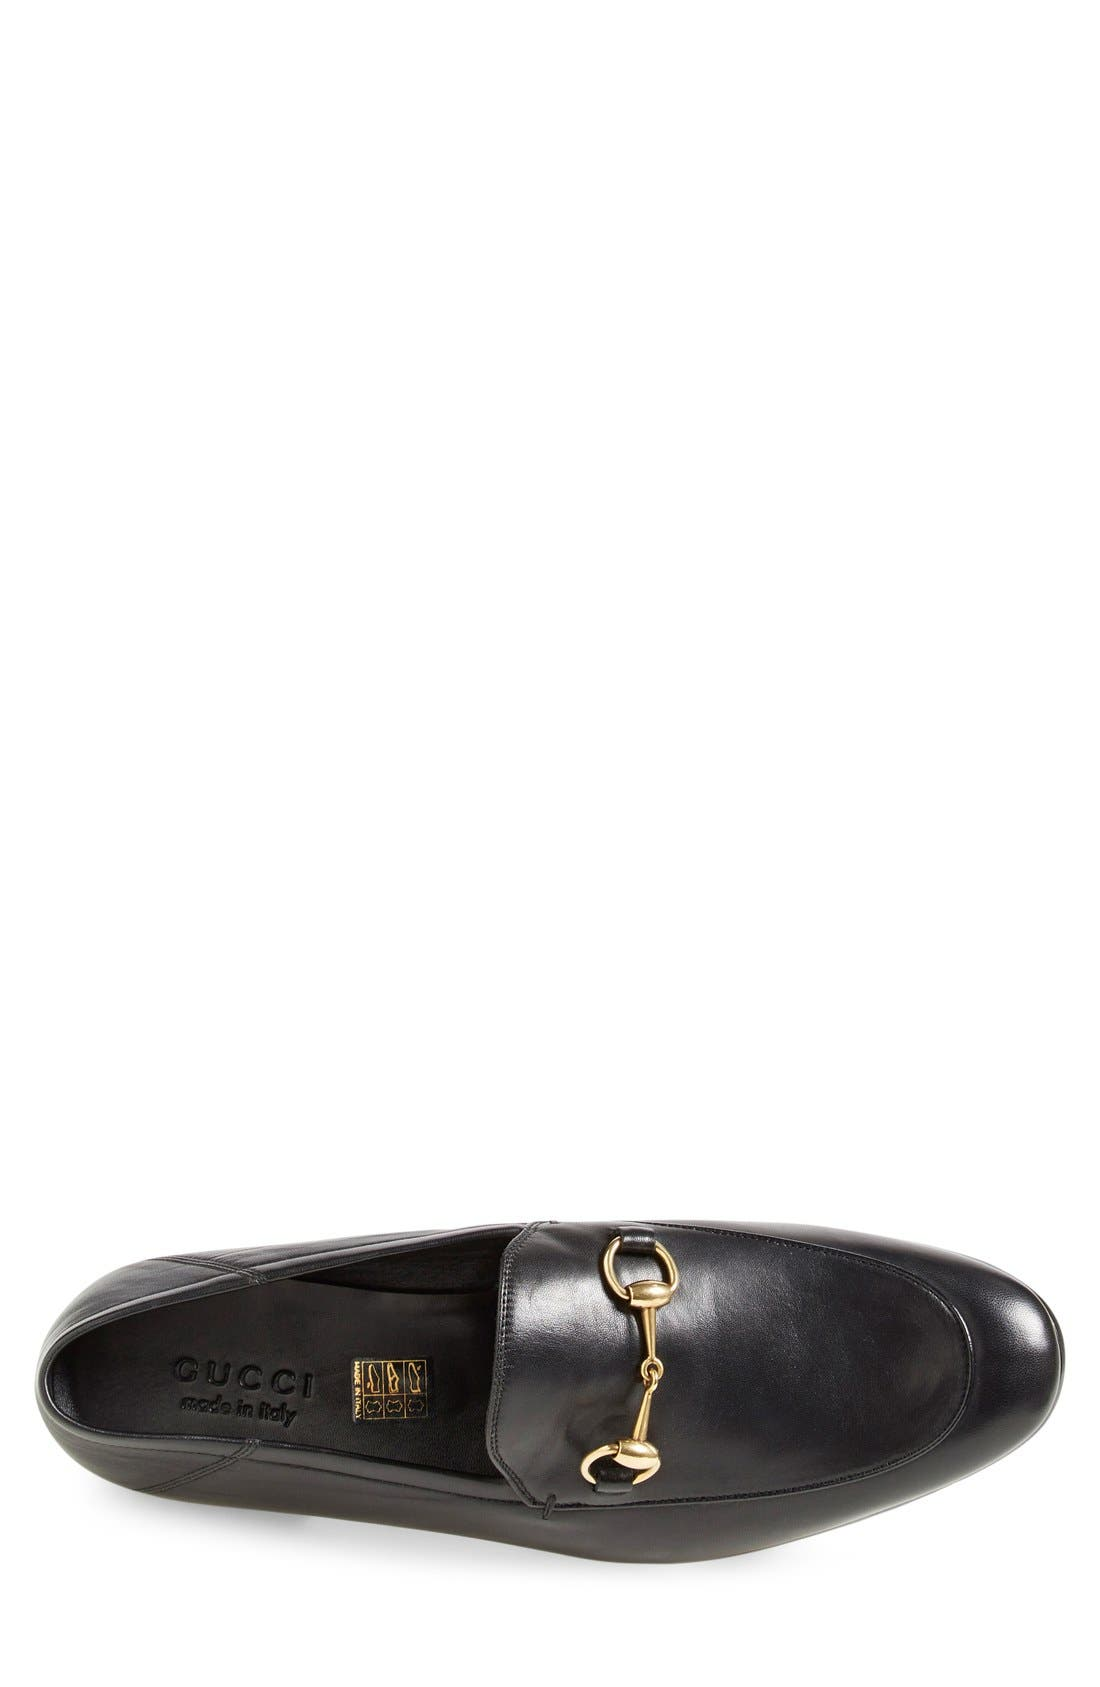 Brixton Leather Loafer,                             Alternate thumbnail 2, color,                             NERO LEATHER